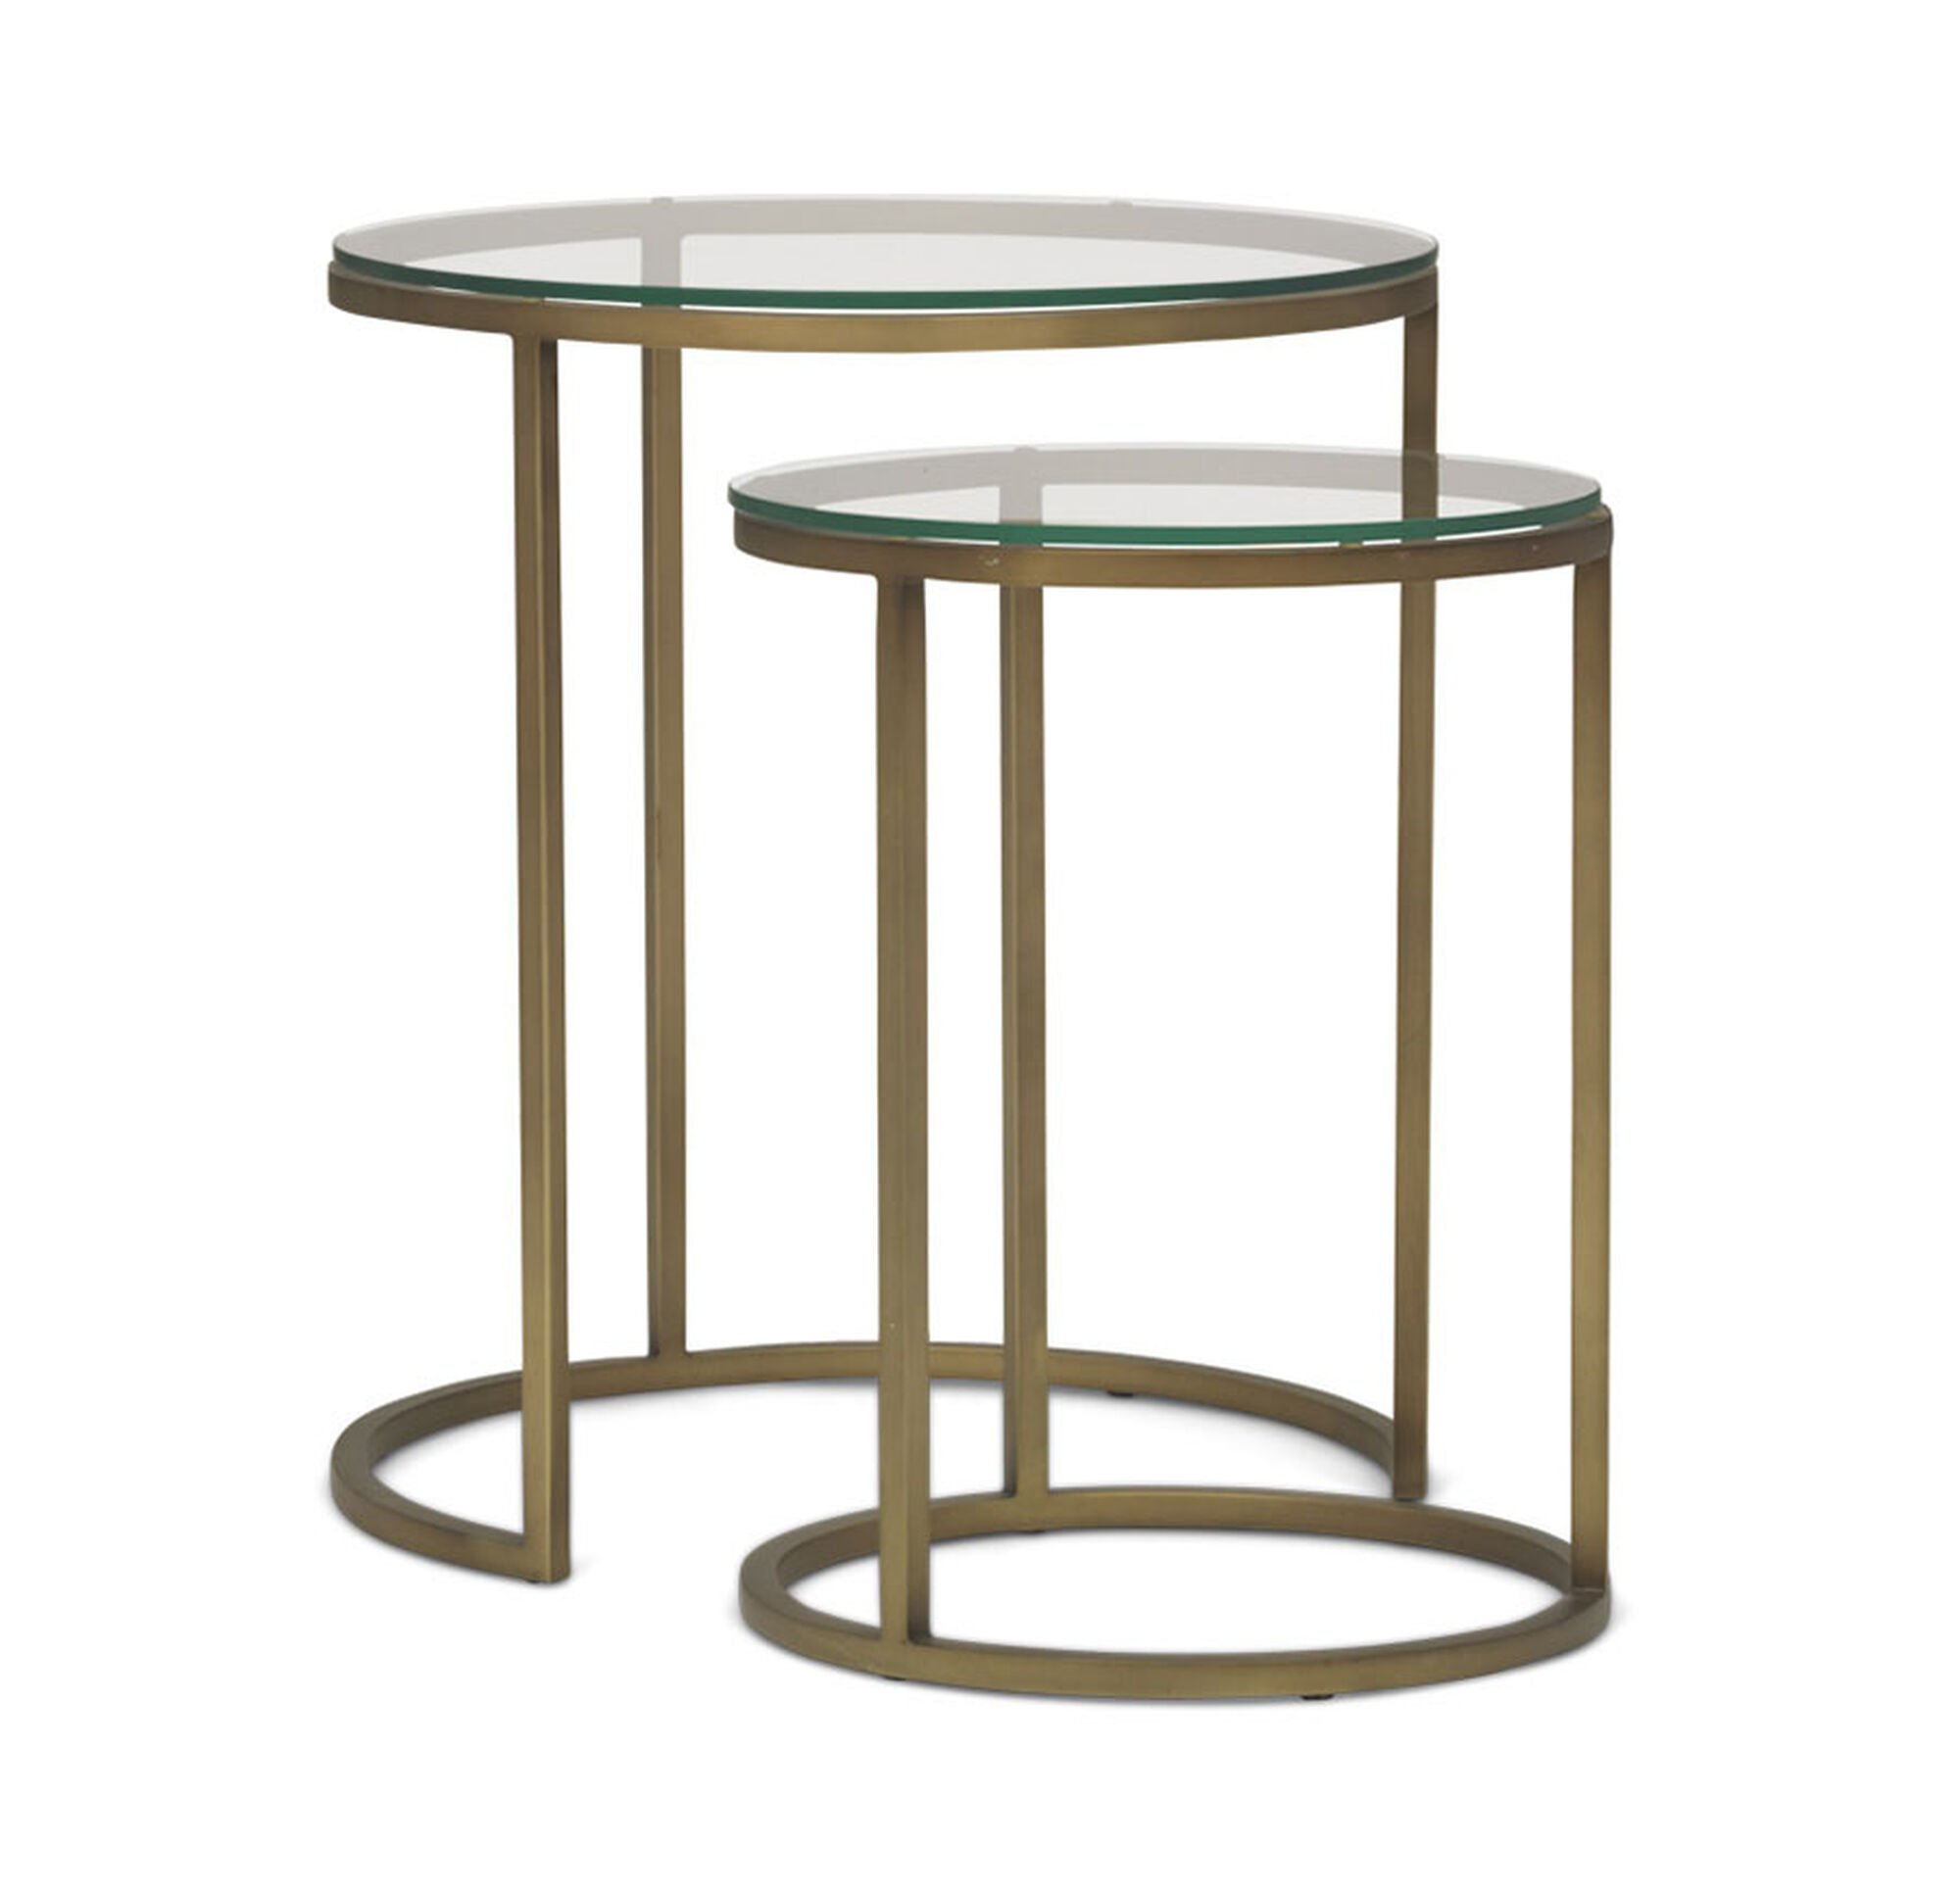 tables colors better table with gardens homes round walmart ip multiple accent com drawer